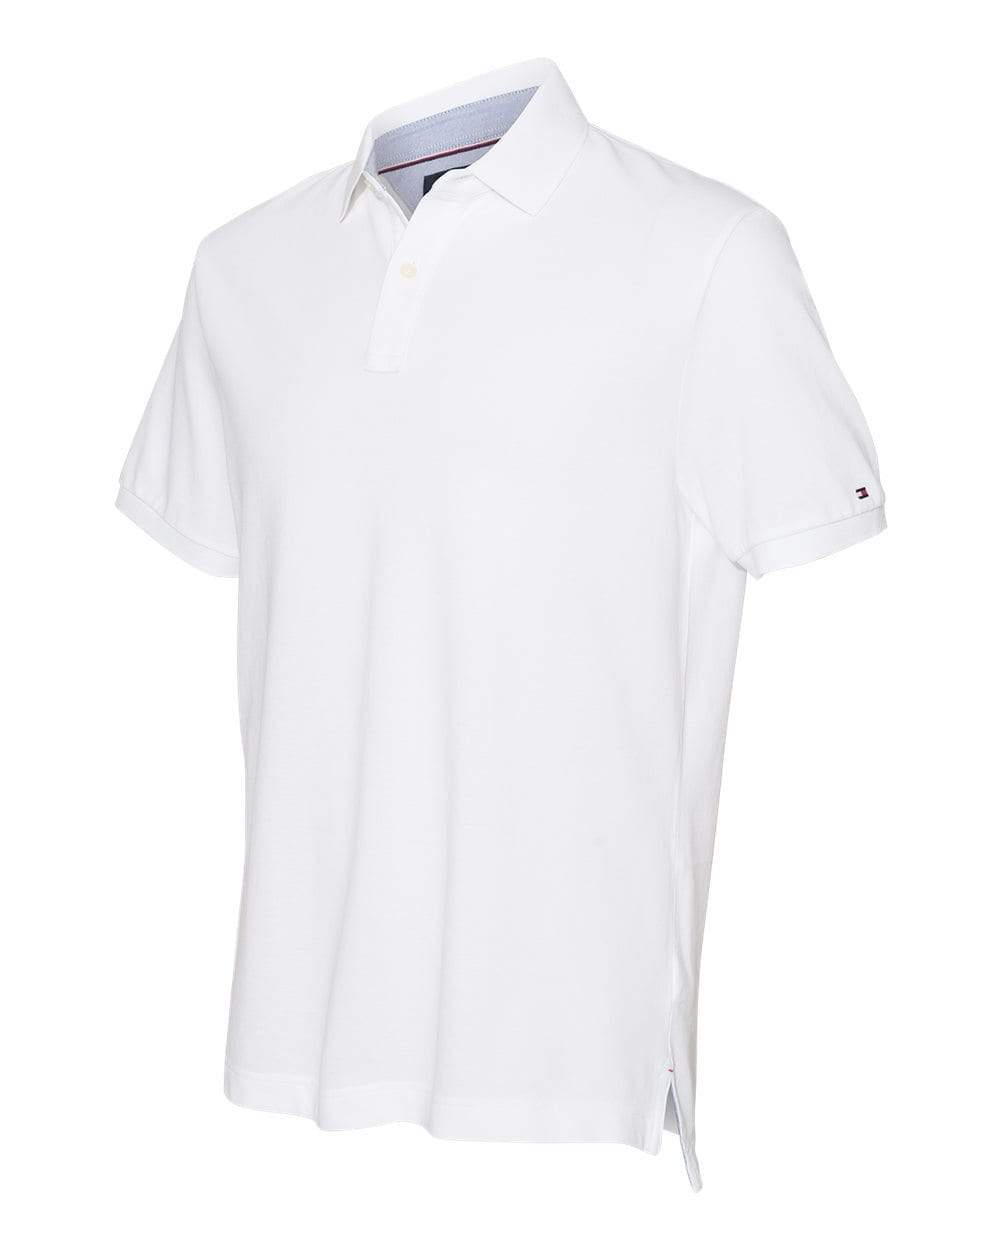 Tommy Hilfiger Polos S / White Tommy Hilfiger - Classic Fit Ivy Pique Sport Shirt